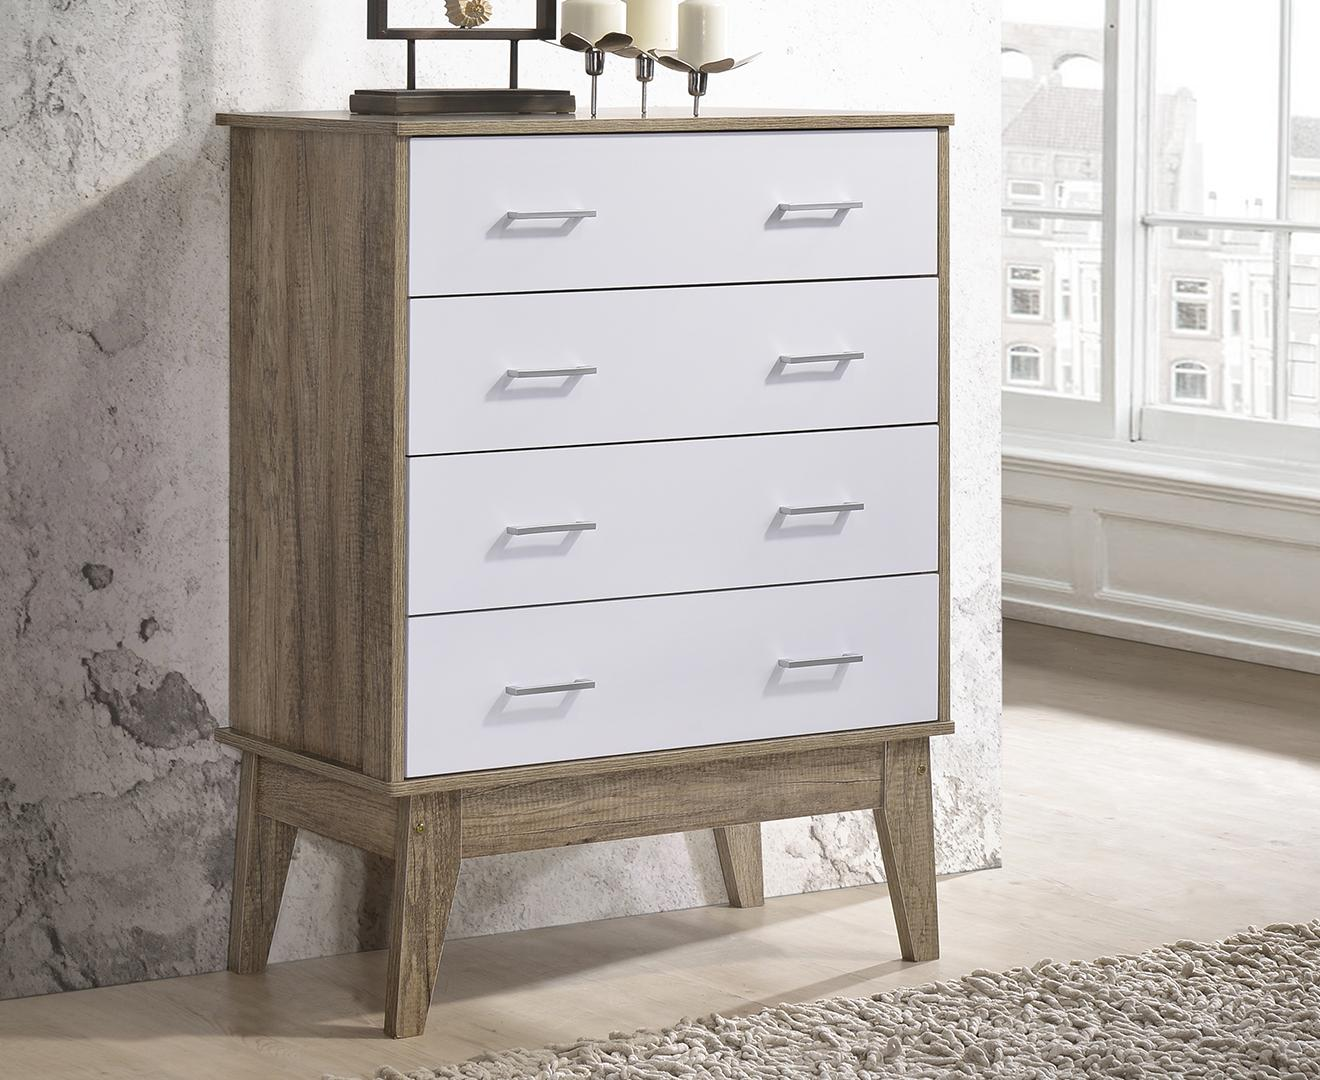 Scandinavian 4 Chest of Drawers Cabinet Storage Tallboy Bedroom⭐E-LIVING Furniture